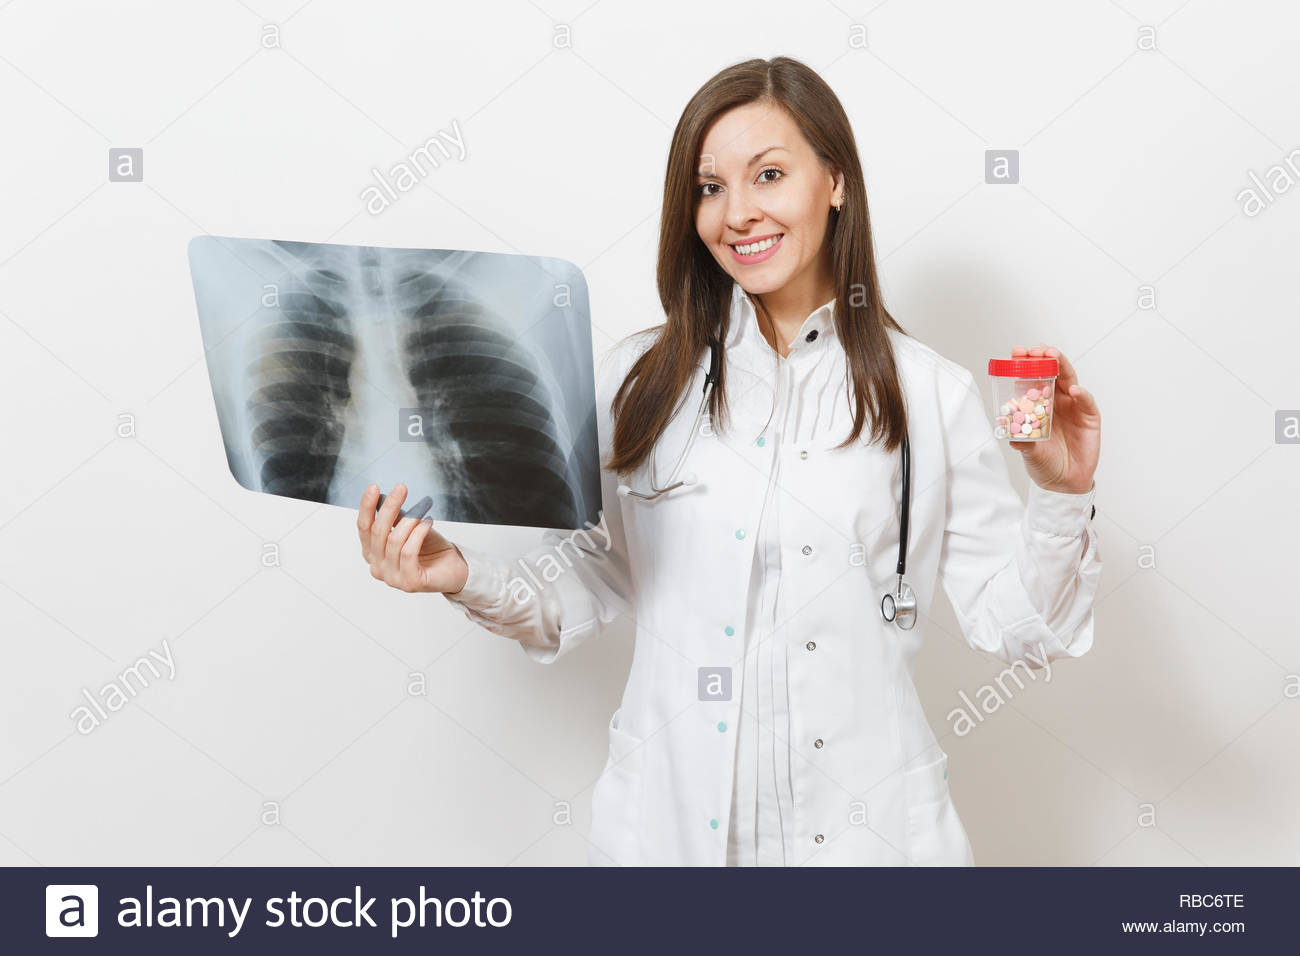 Doctor woman with bottle with pills, X-ray of lungs, fluorography, roentgen isolated on white background. Female doctor in medical gown stethoscope. H - Stock Image